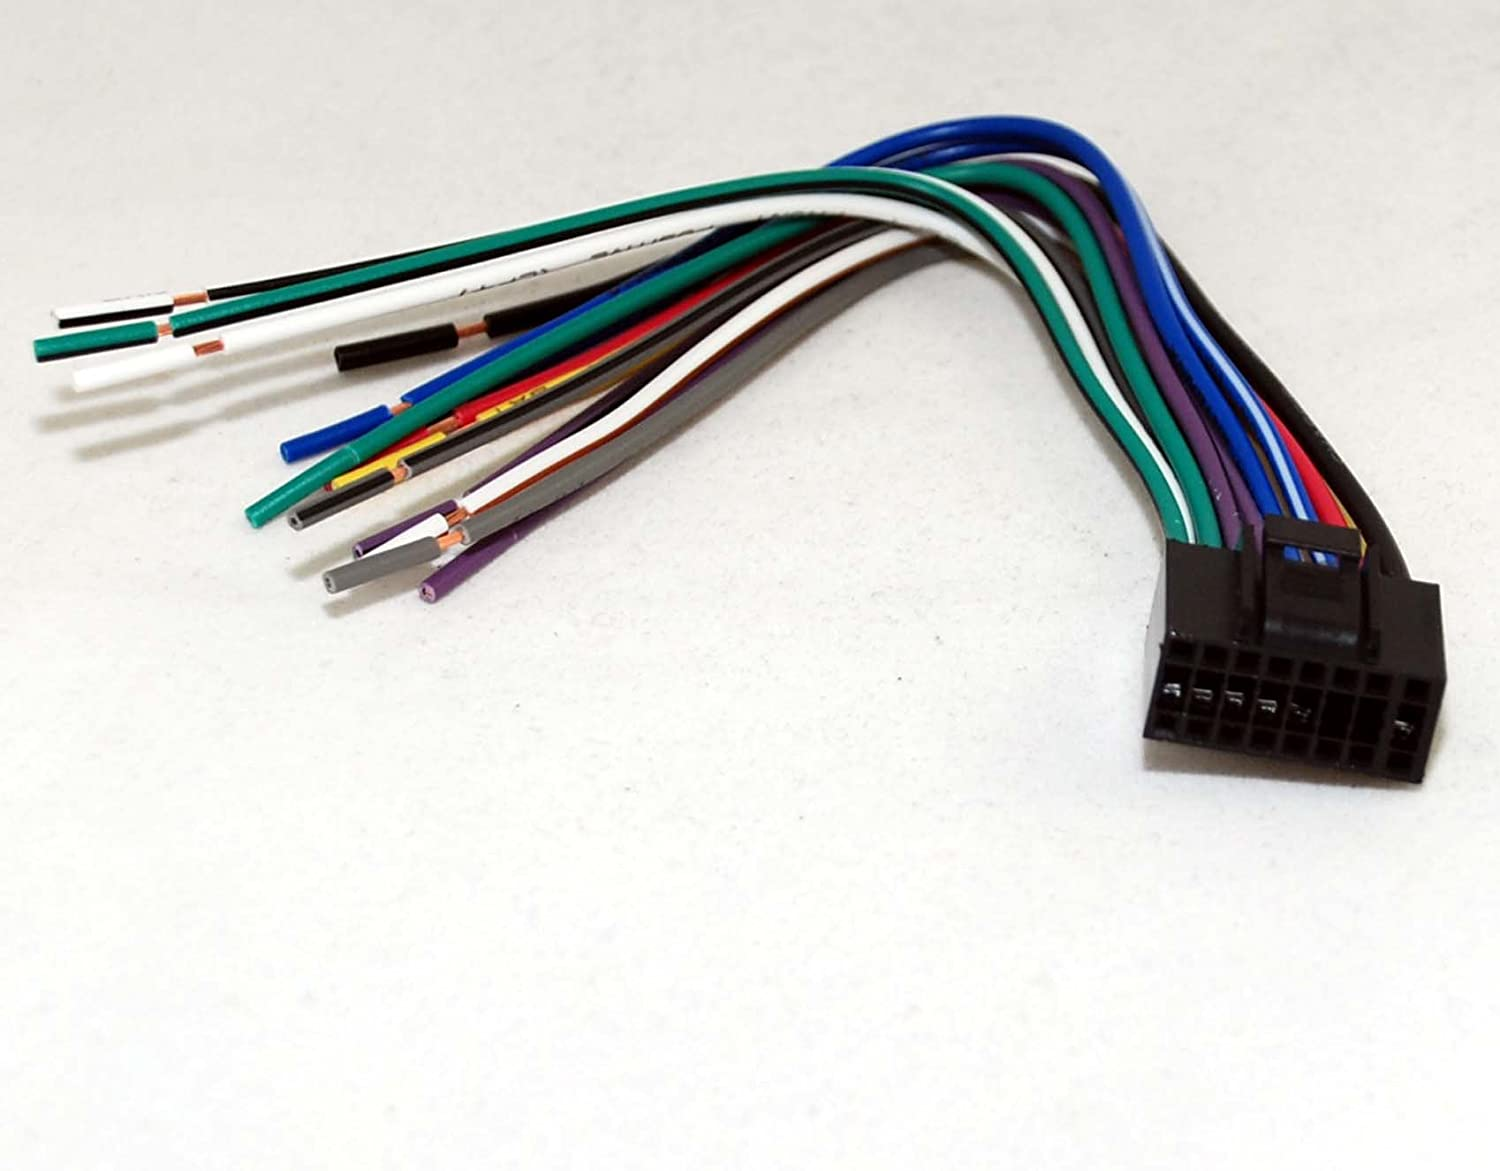 61Rzeblbo0L._SL1500_ amazon com xtenzi harness for dual 16 pin wire harness xdvd8181 dual car stereo wiring harness at n-0.co